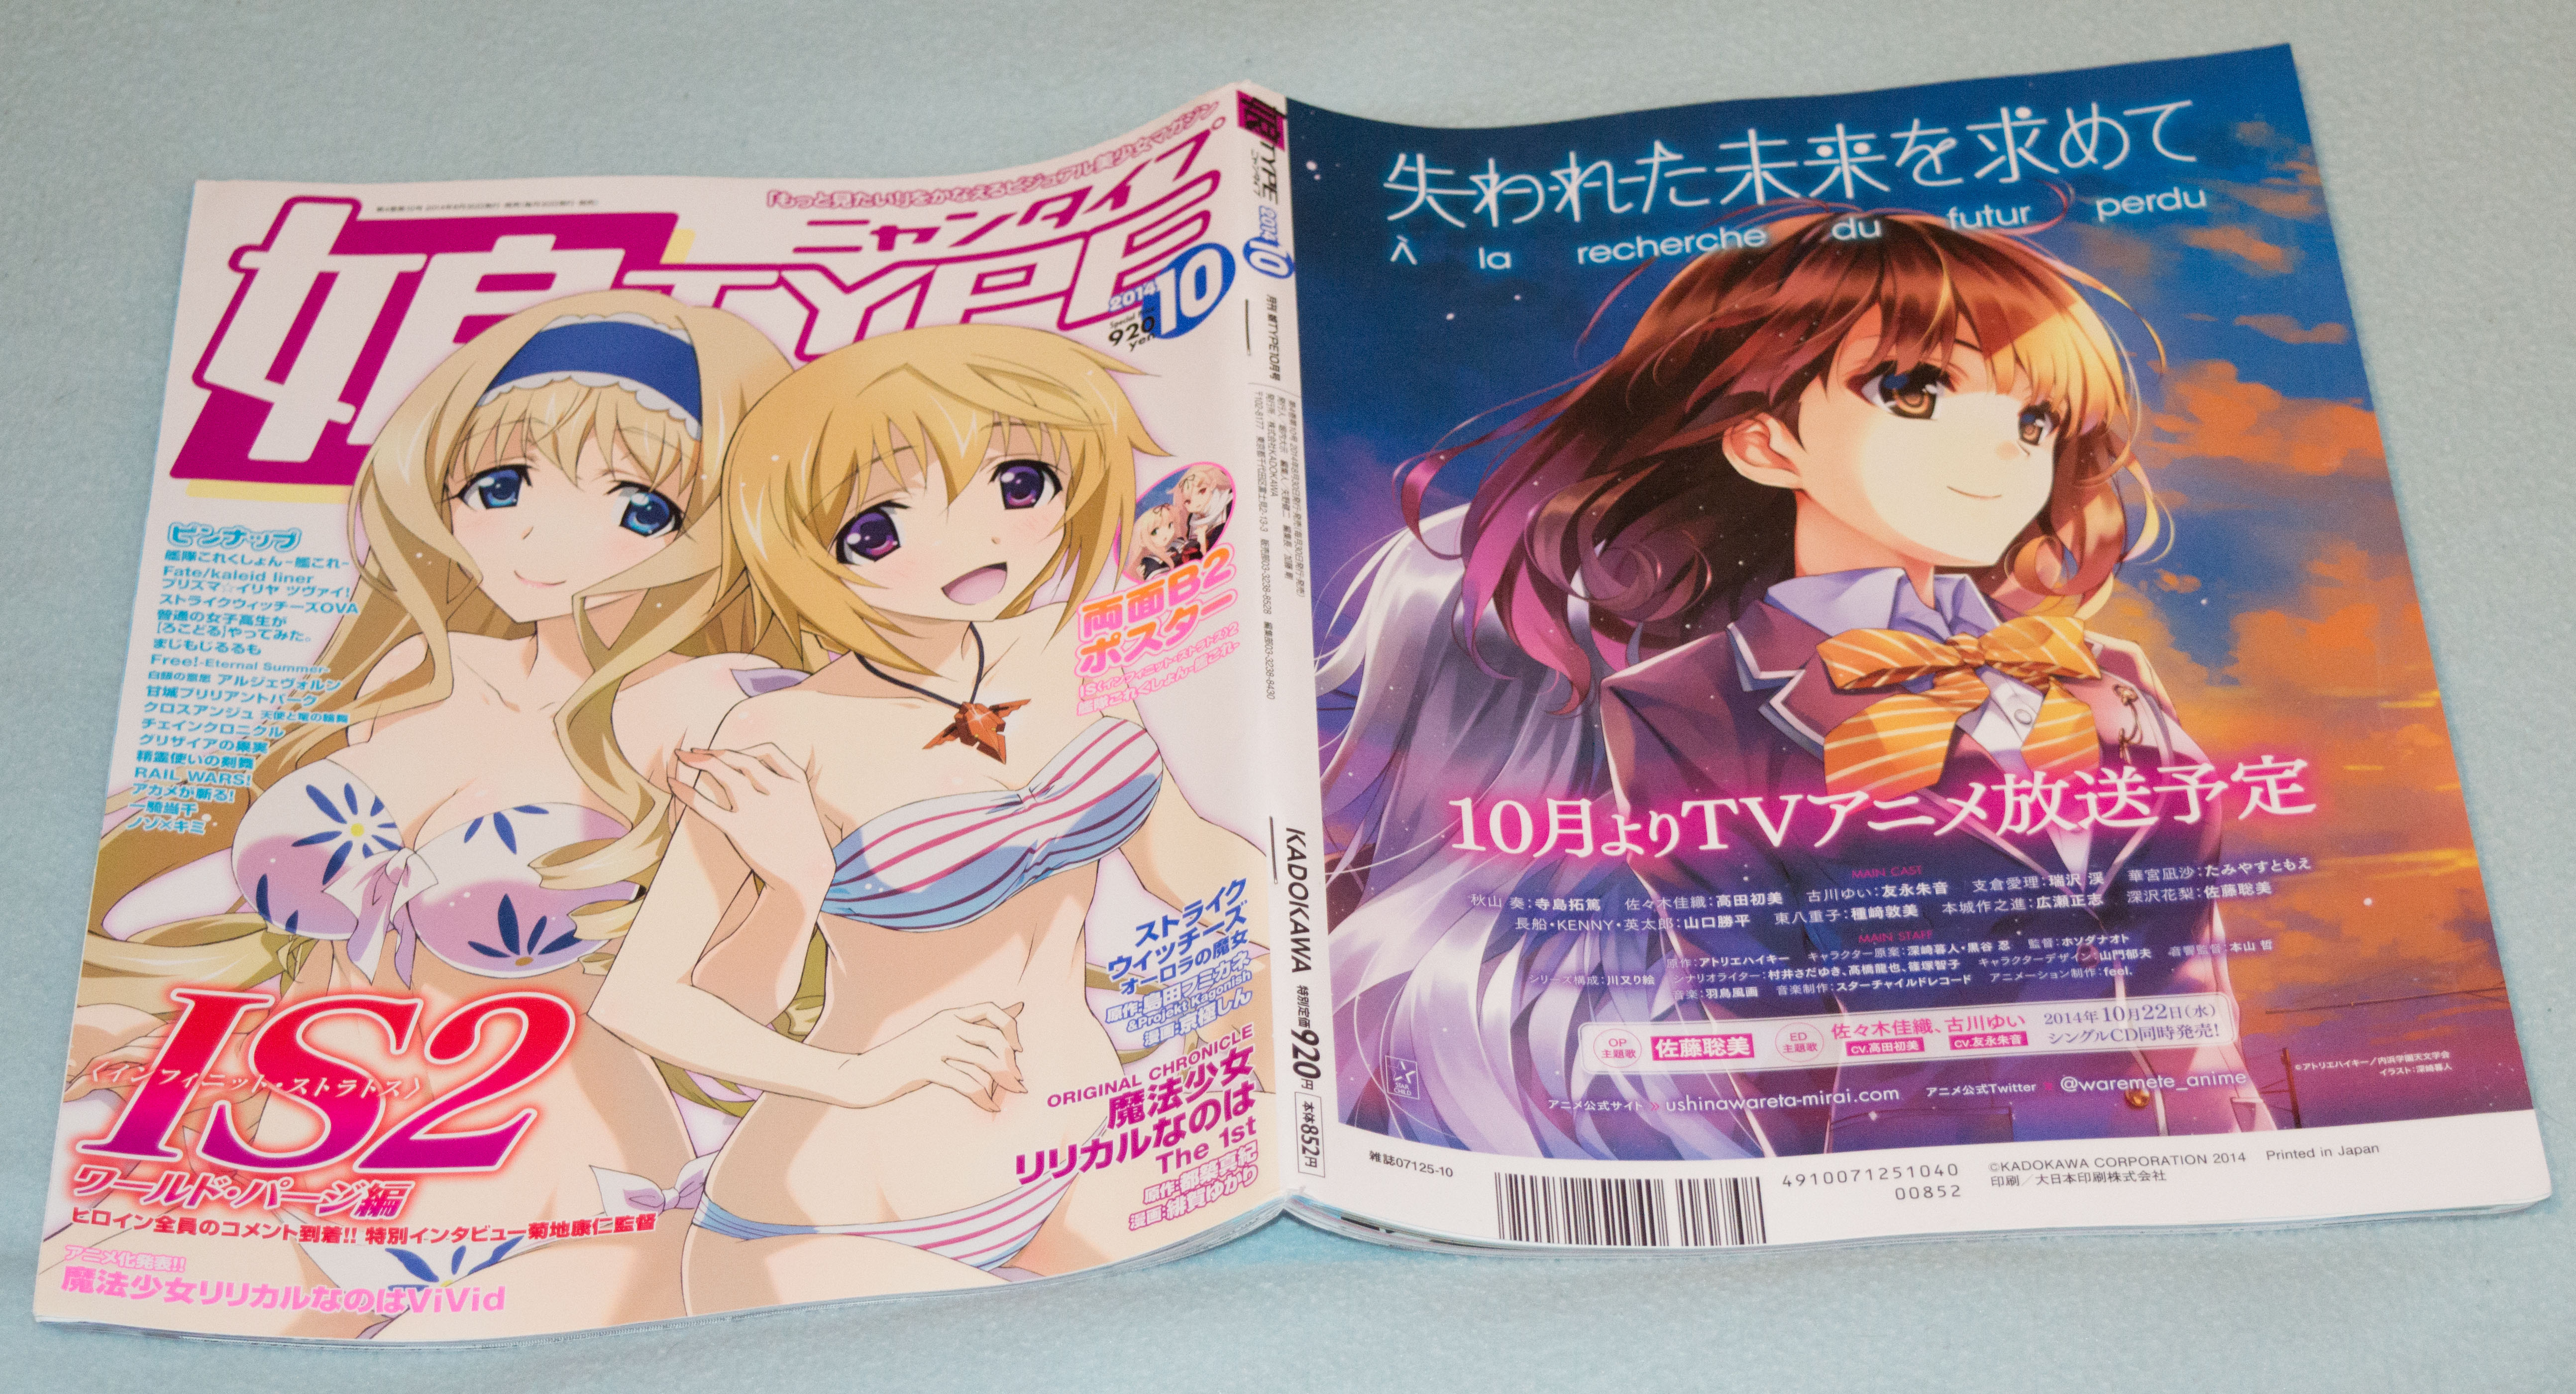 Haruhichan.com NyanType October 2014 Cover and Back